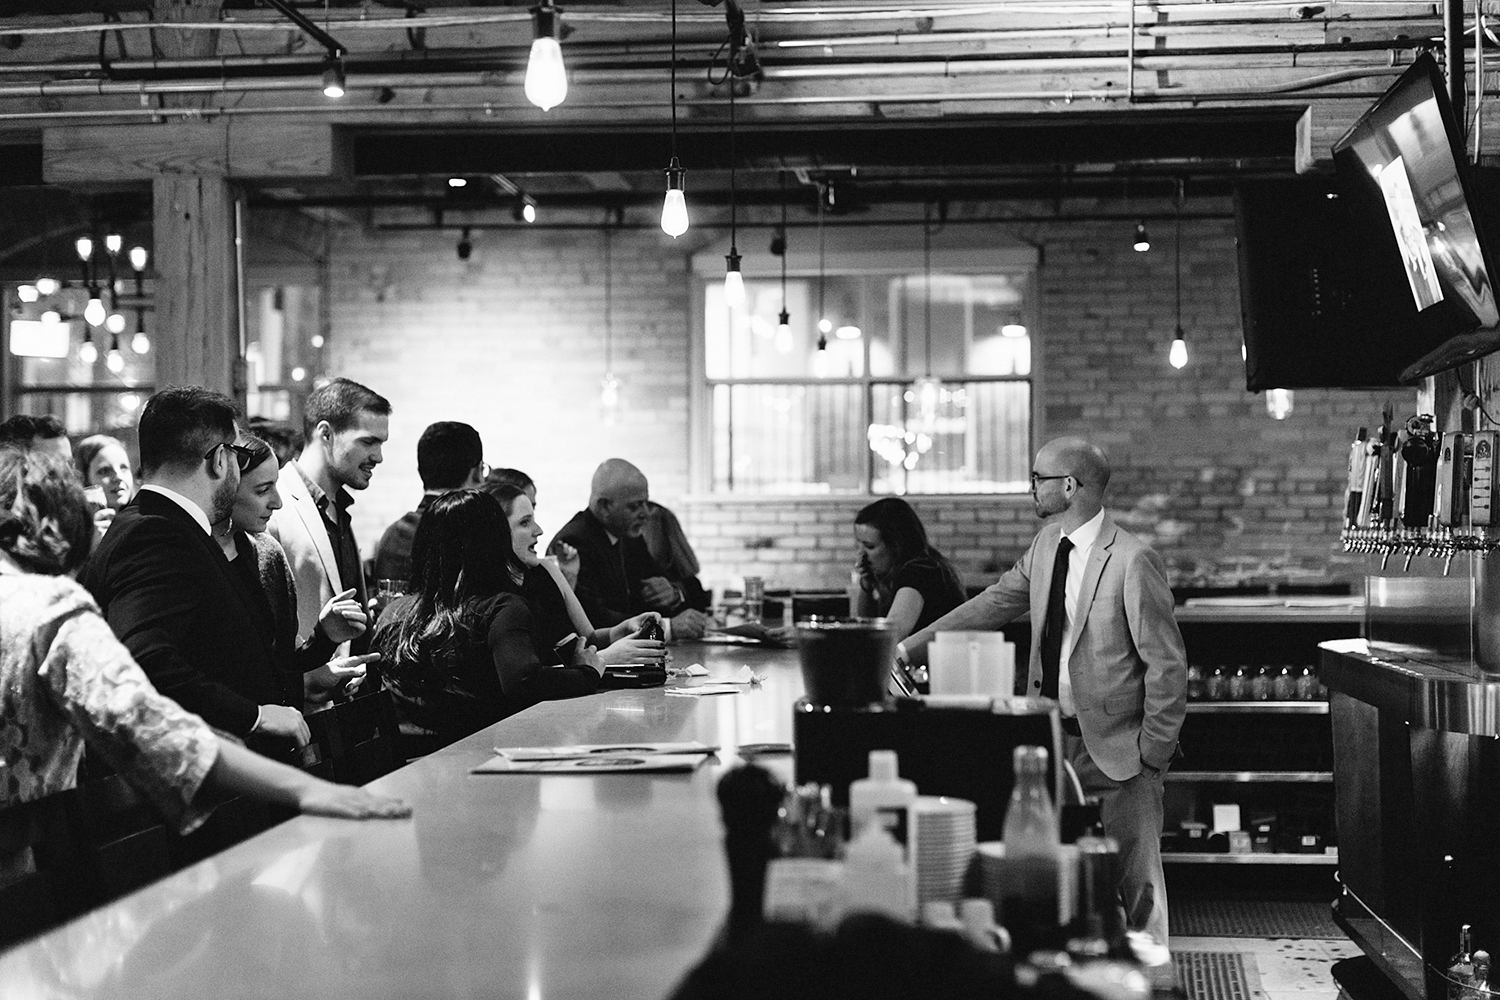 59-liberty-village-wedding-toronto--craft-brewery-wedding-photographer-craft-brewery-alternative-unique-couple-analog-film-candid-documentary-moments-old-toronto-11.jpg